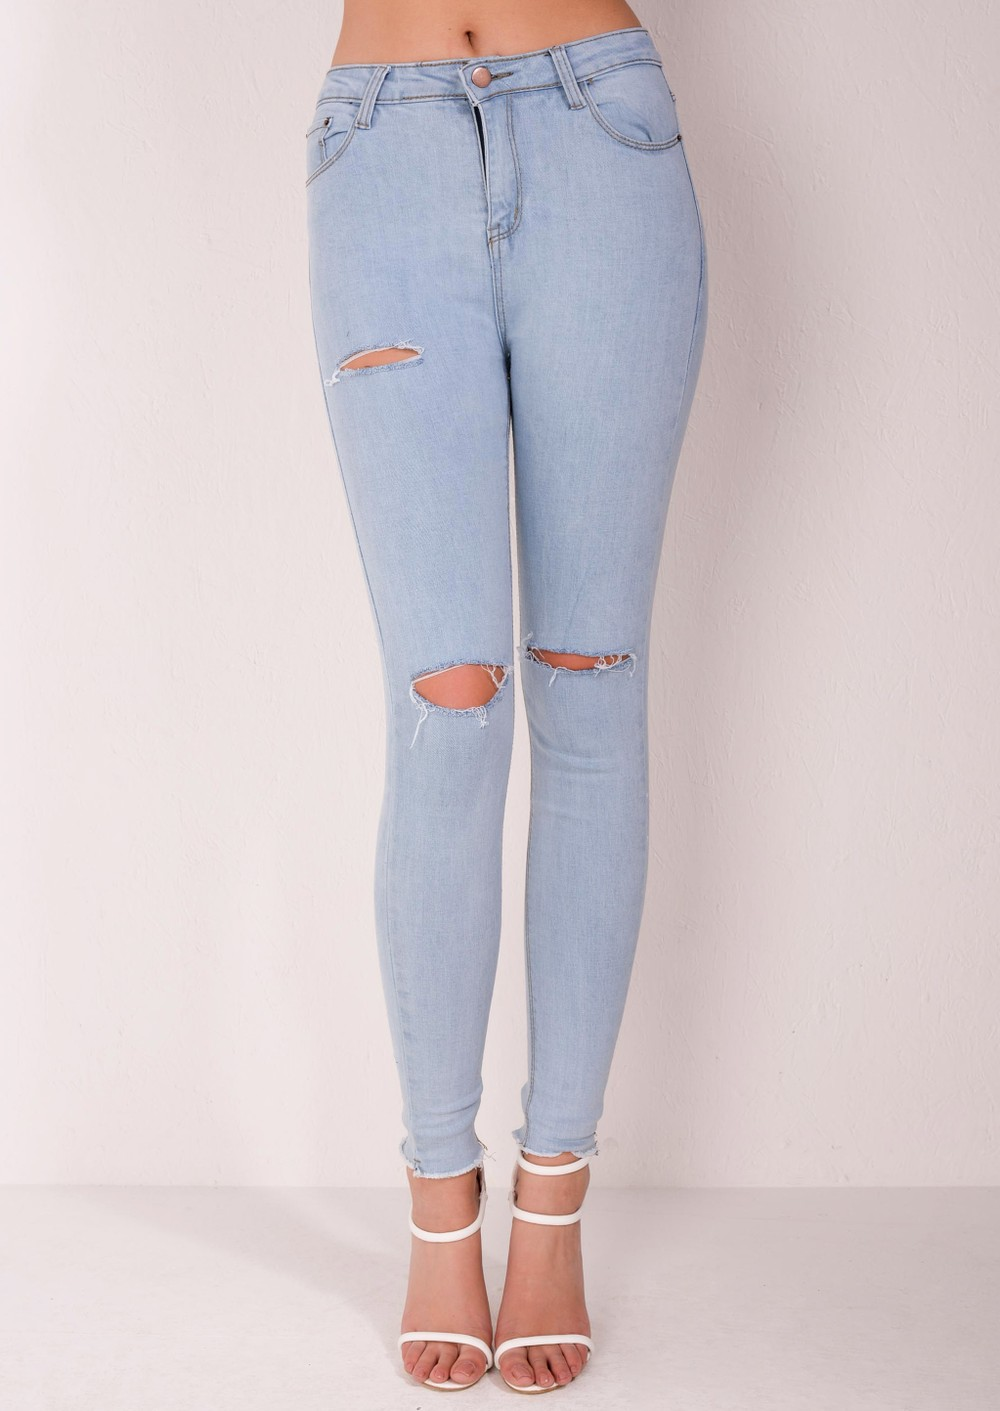 Where can i find high waisted ripped jeans